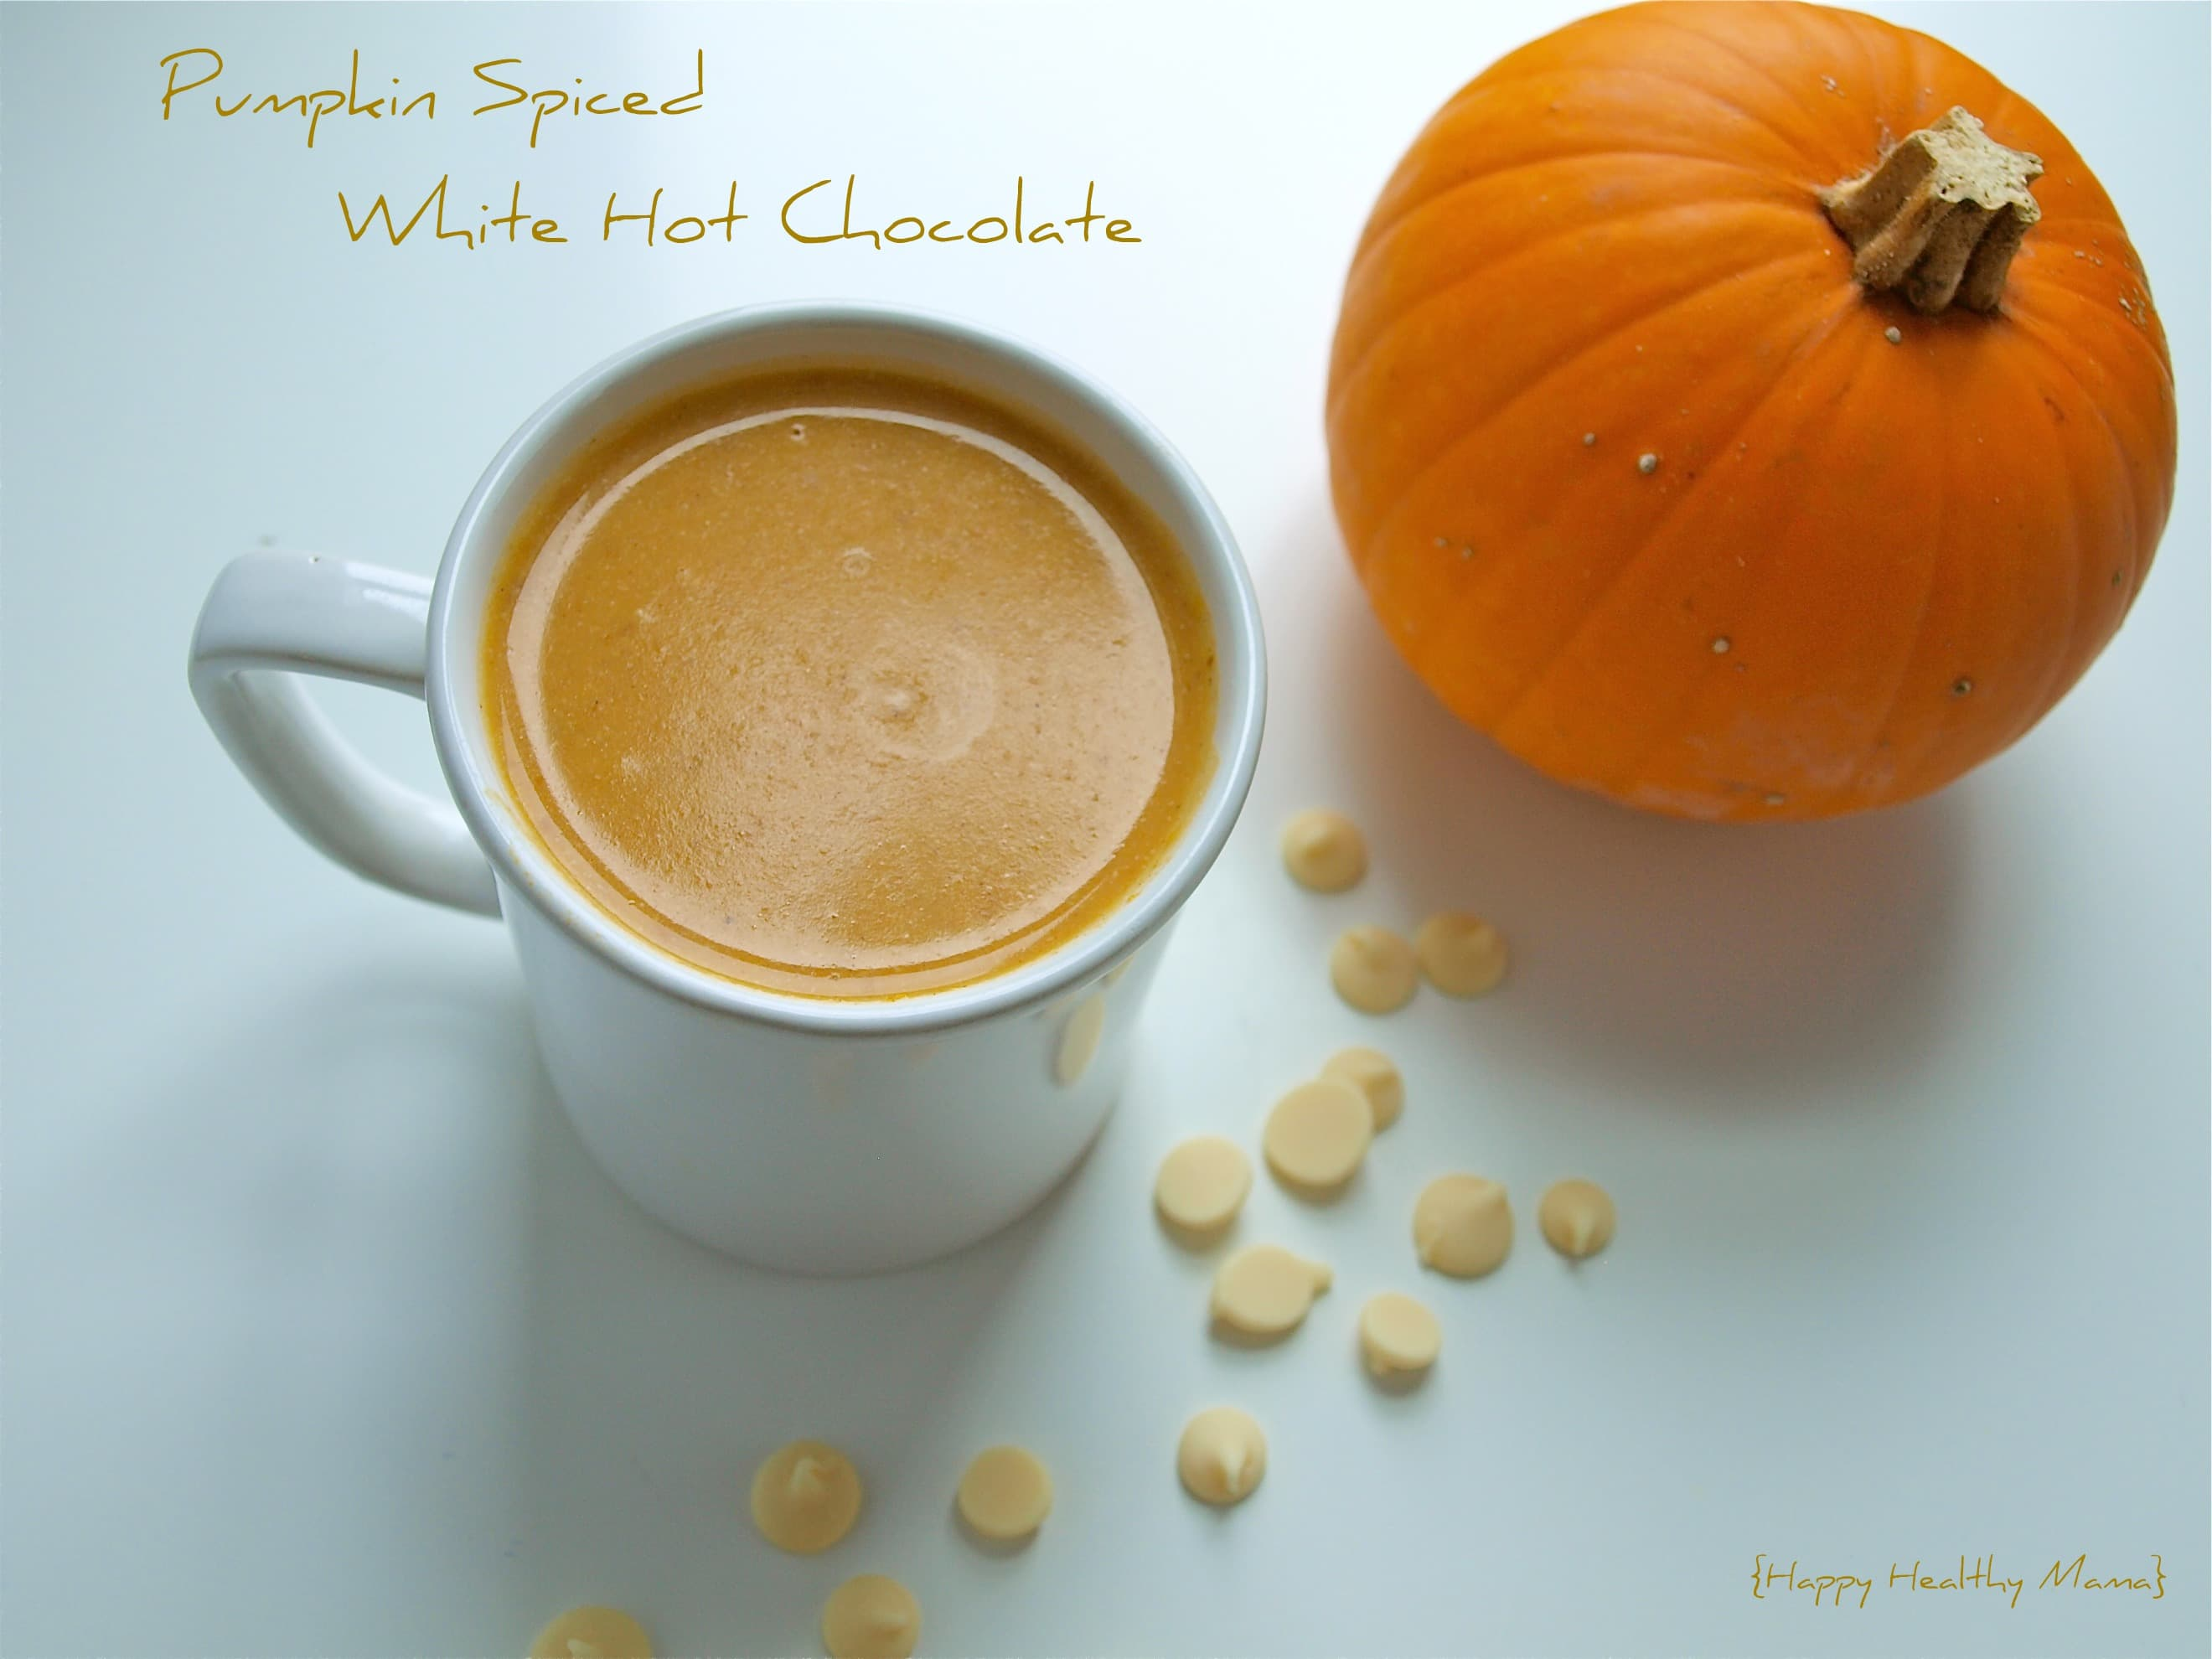 Pumpkin spiced white hot chocolate - Happy Healthy Mama